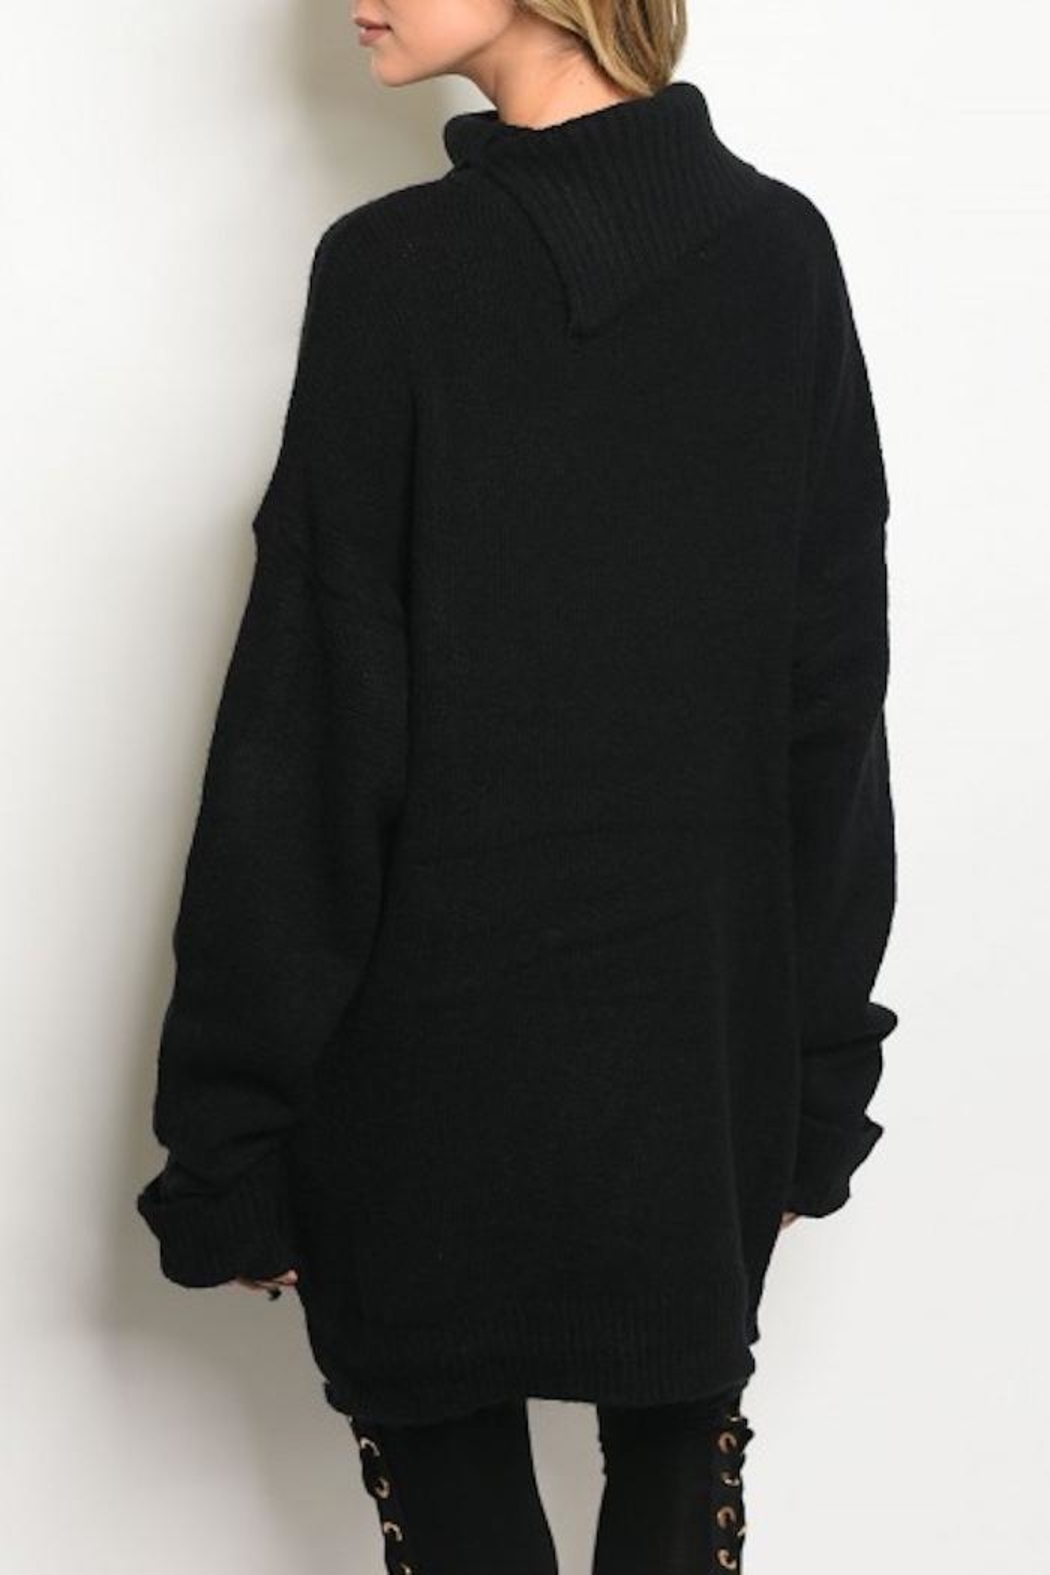 LoveRiche Oversized Turtleneck Sweater from Michigan by HUMANITY ...